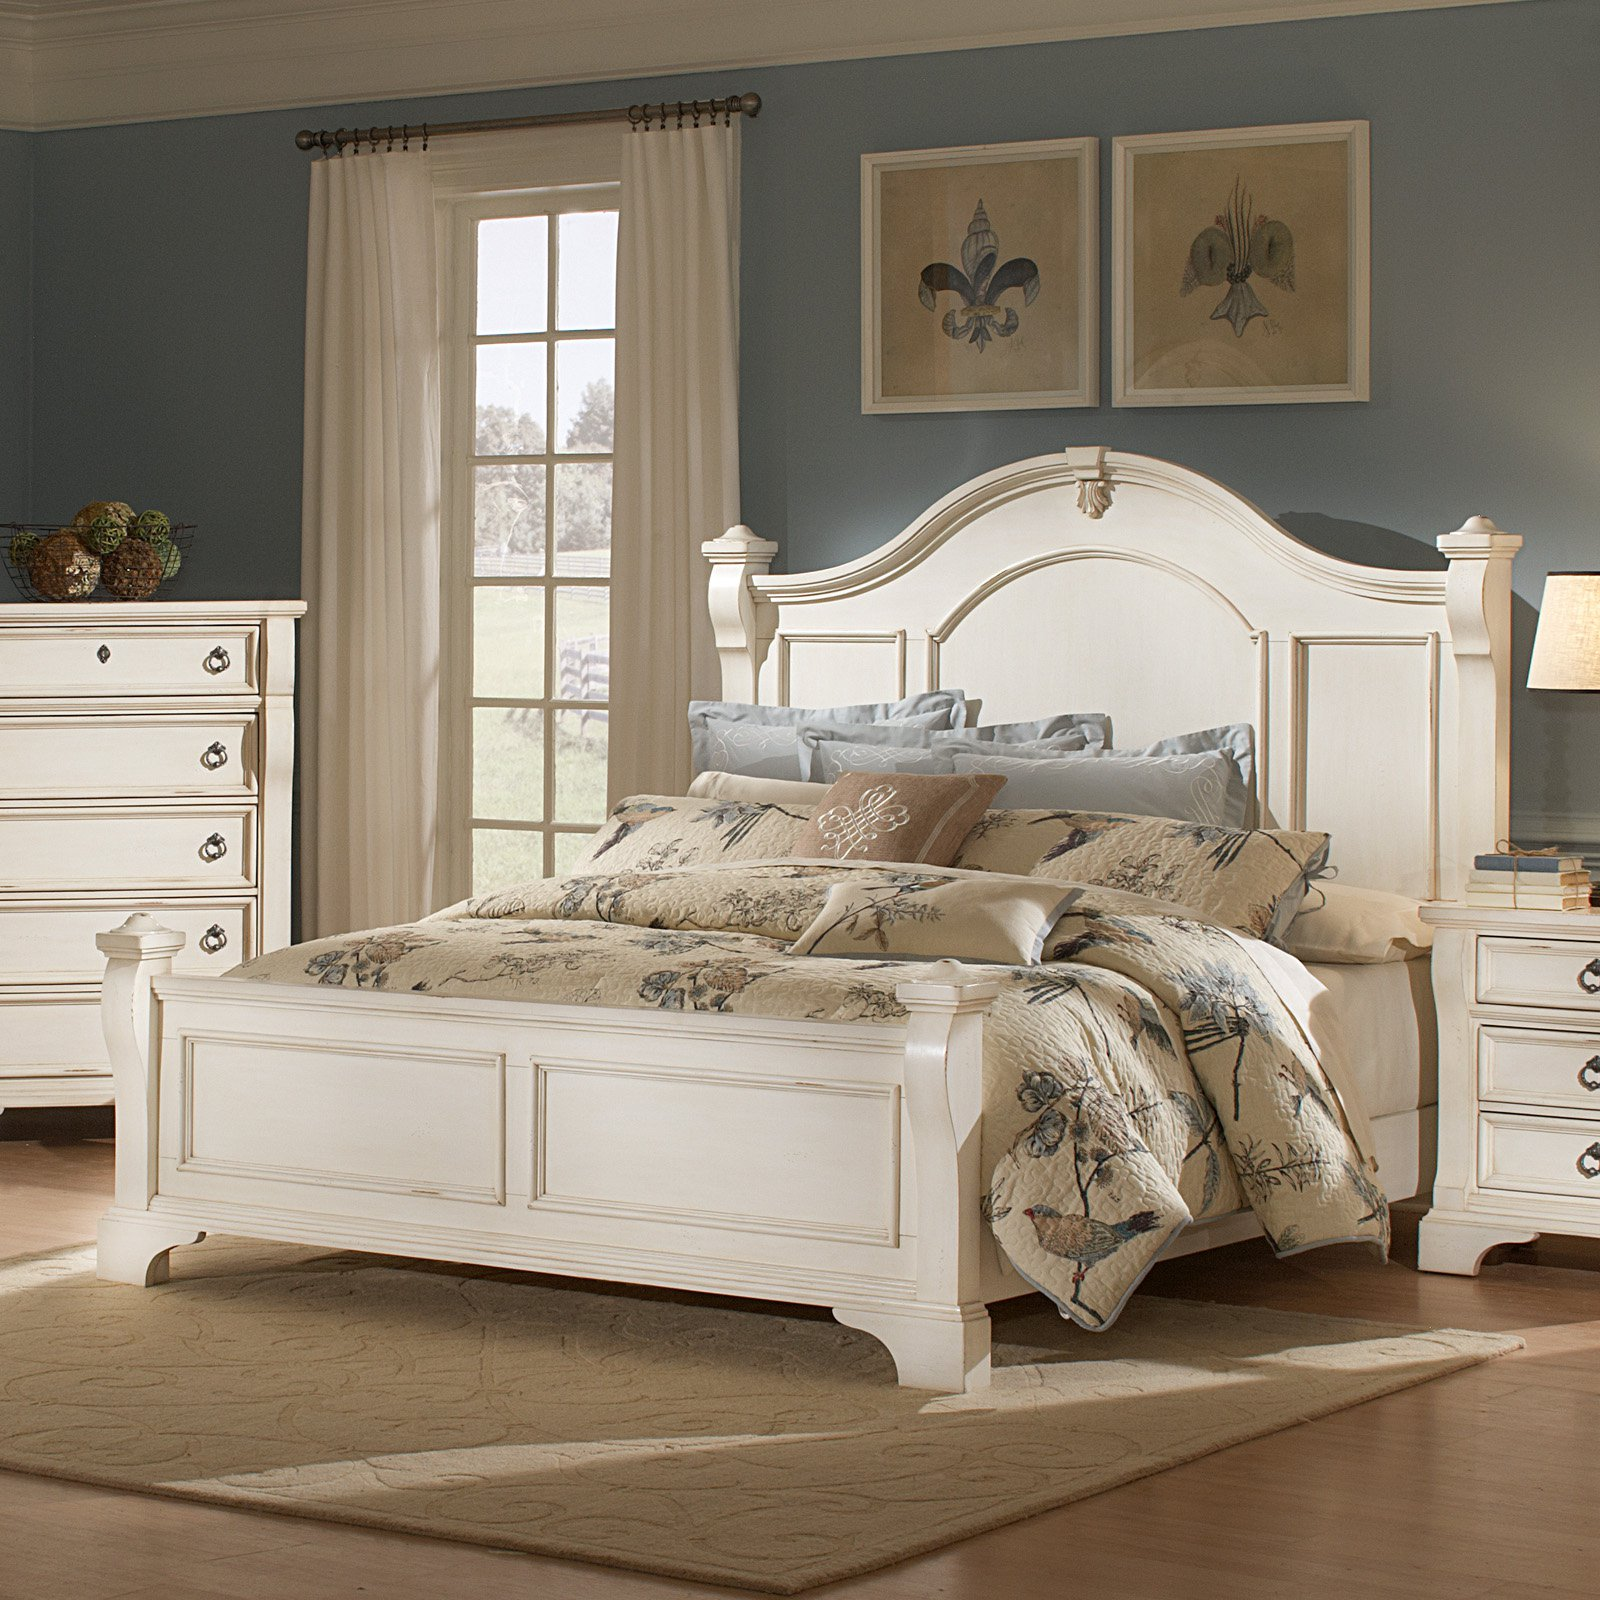 American Woodcrafters Heirloom Mansion Poster Bed by American Woodcrafters